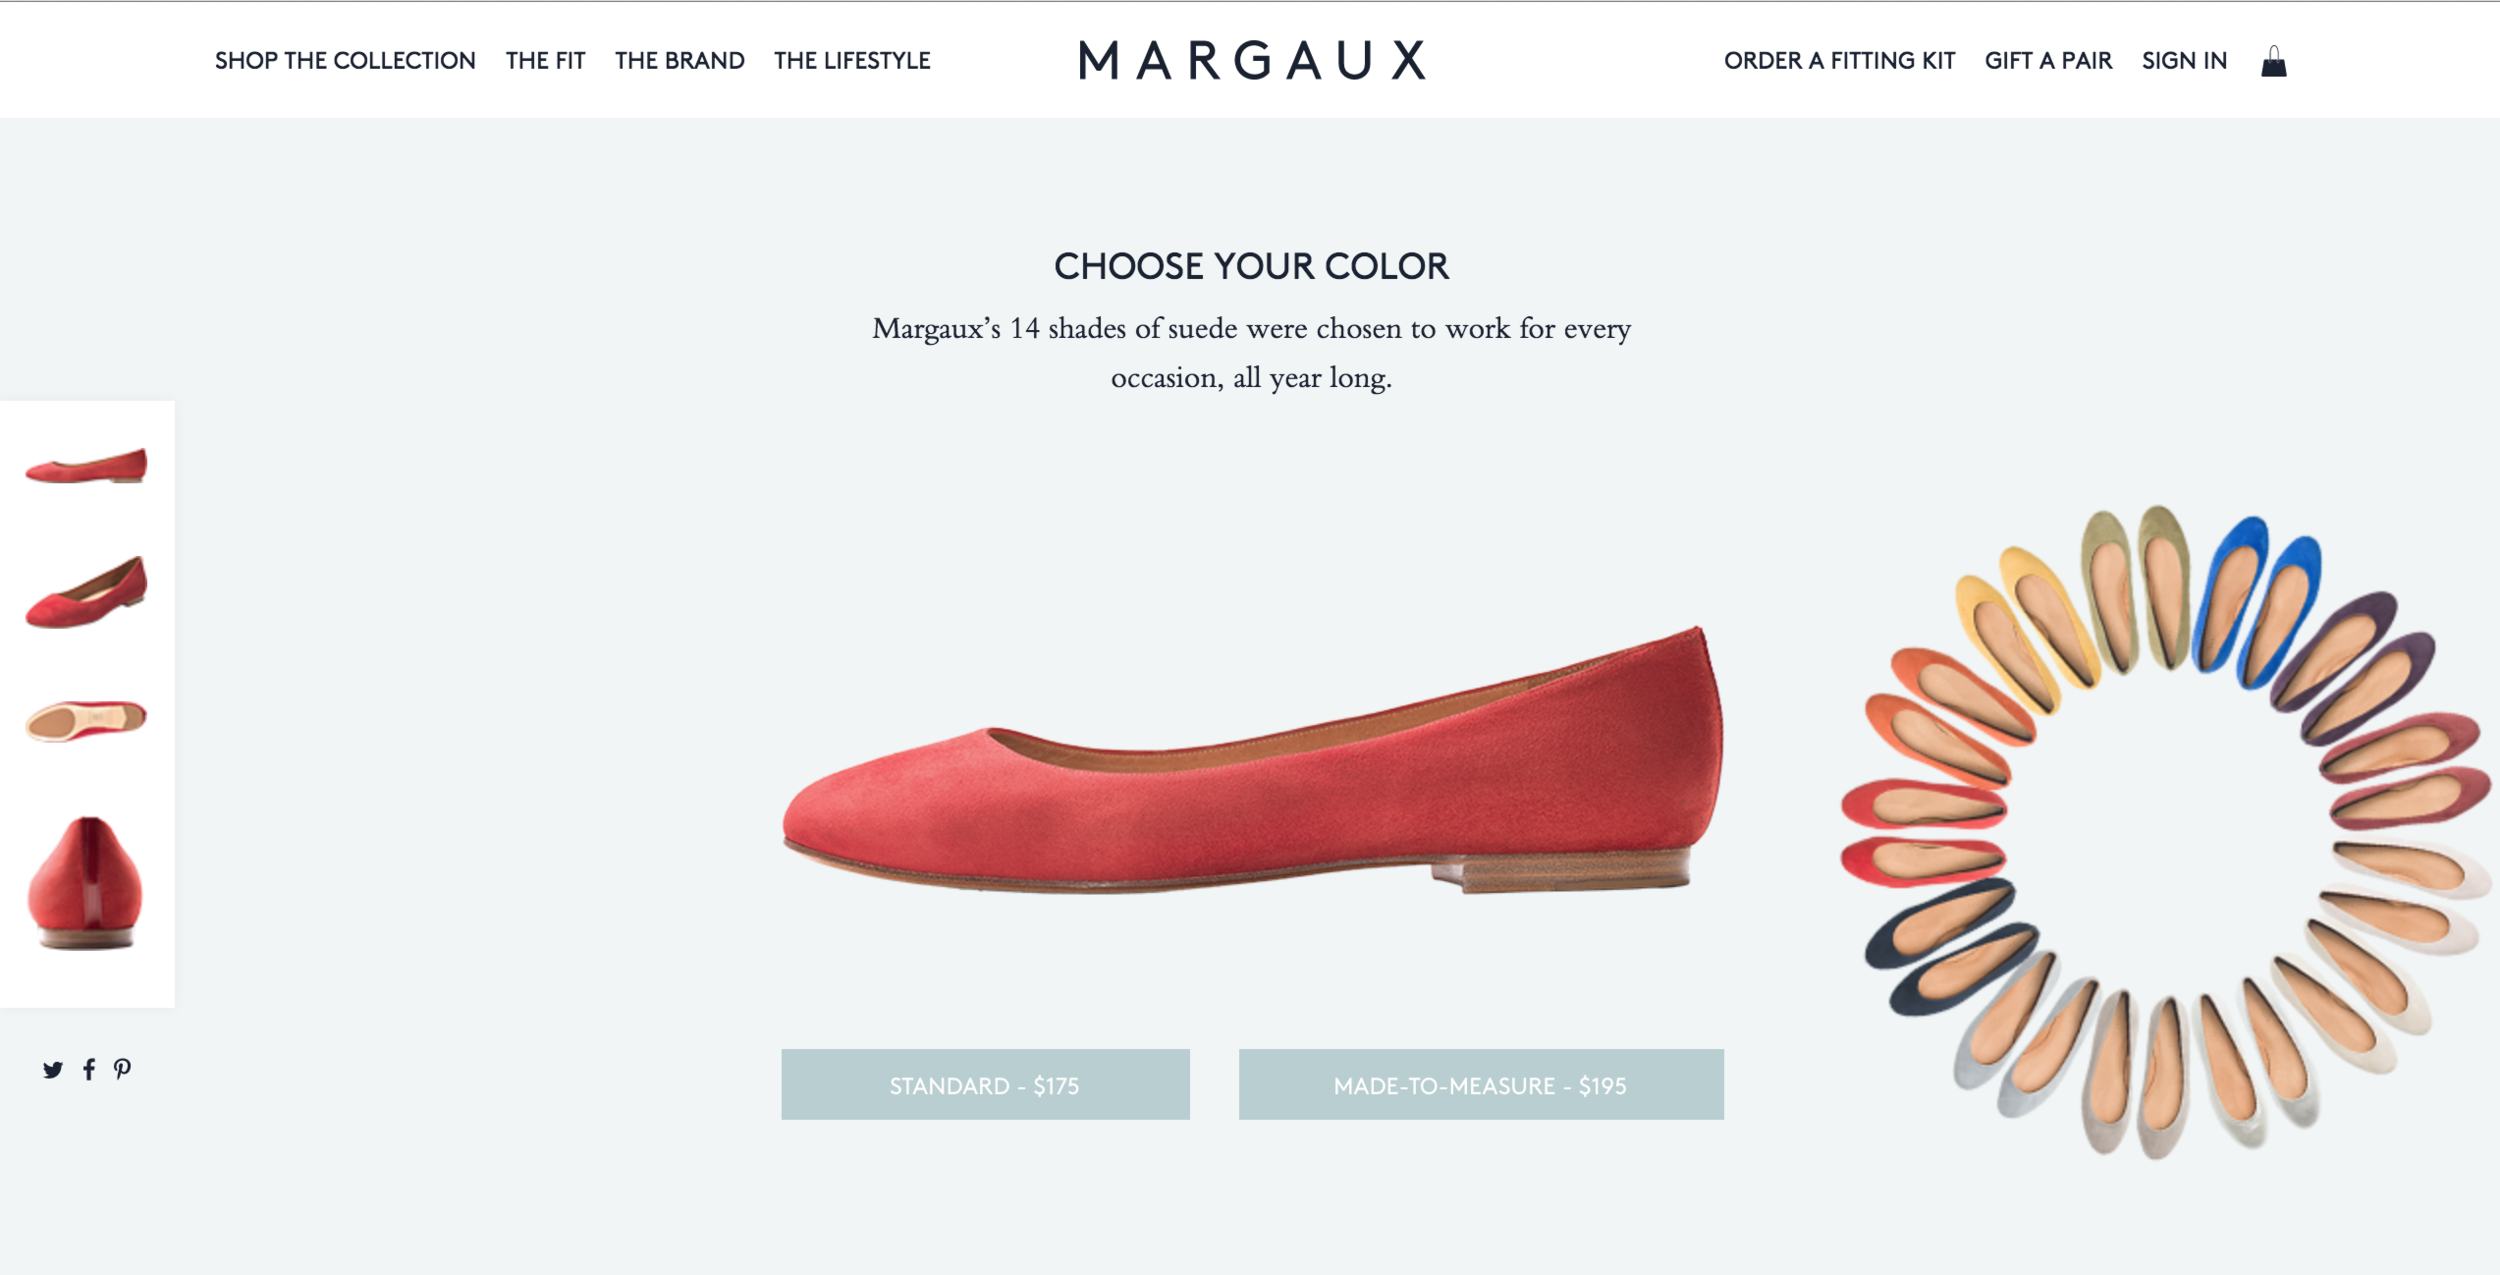 Standard and custom sized flats by Margaux